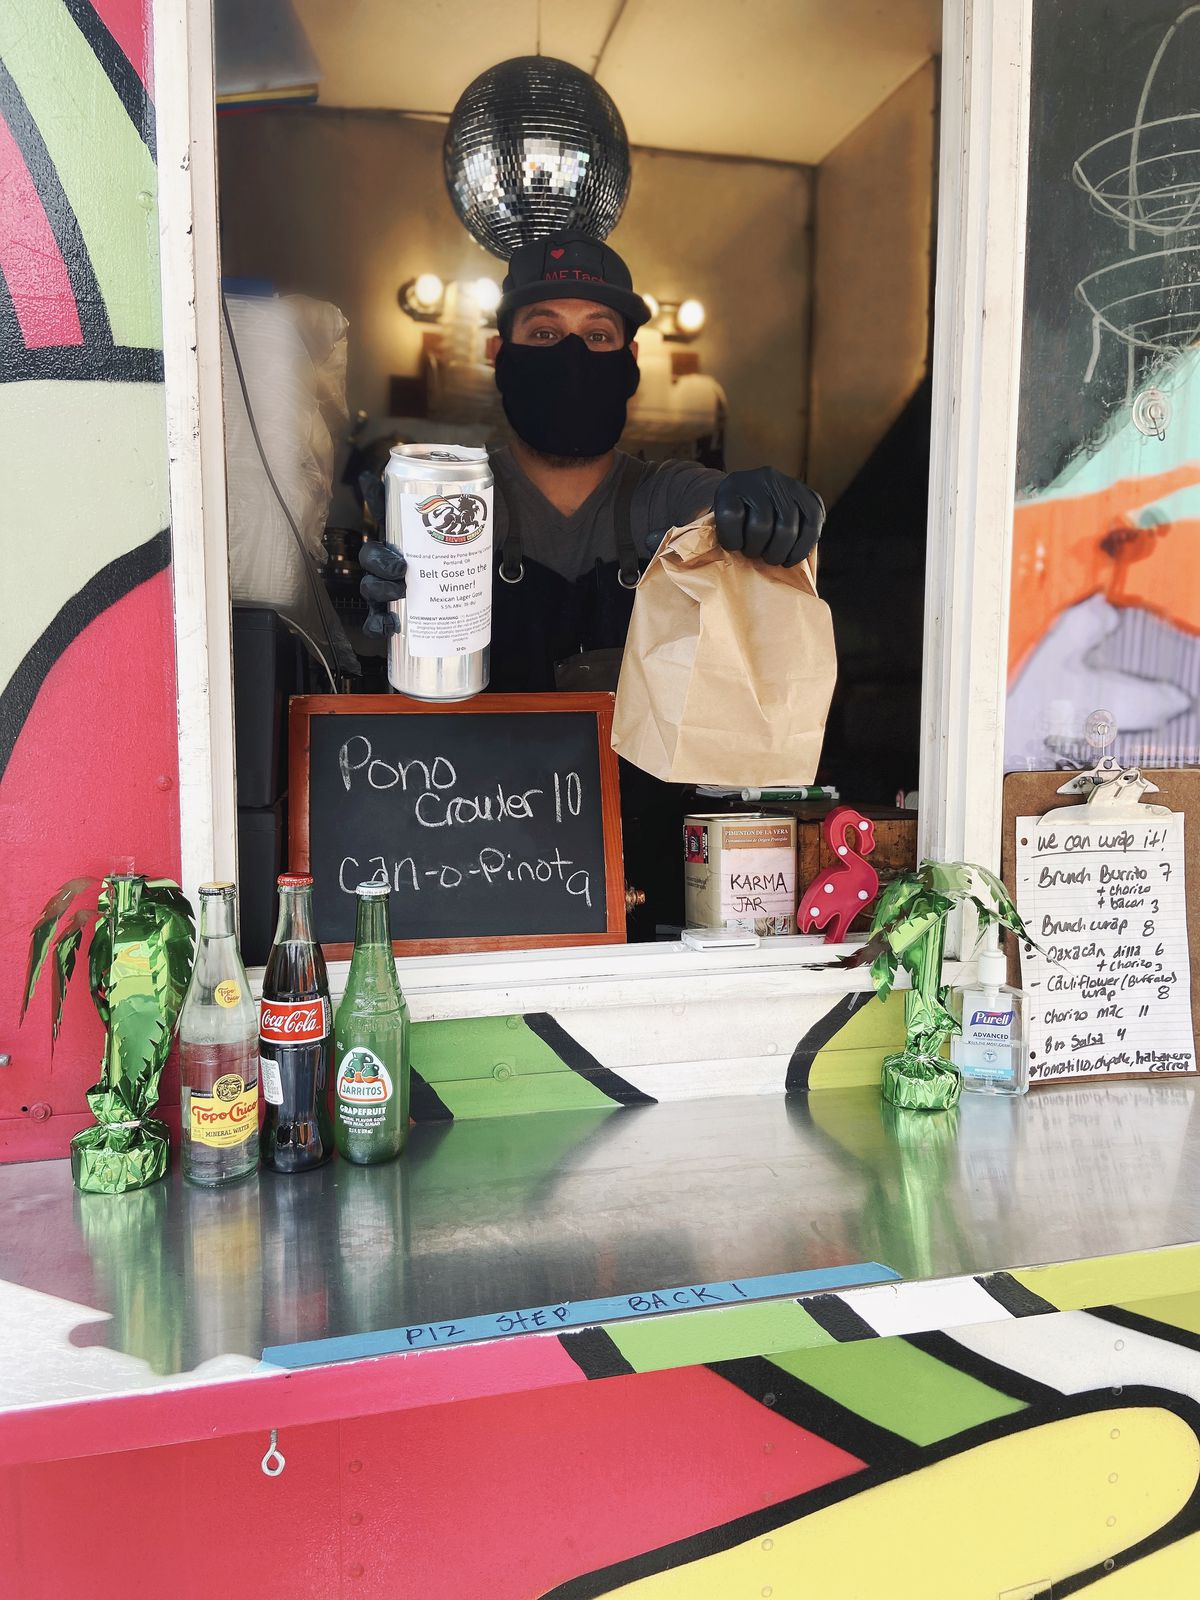 A man in a baseball cap, black face mask, and black gloves holds a beer and a paper bag from the inside of a food cart. A disco-ball hangs over his head.